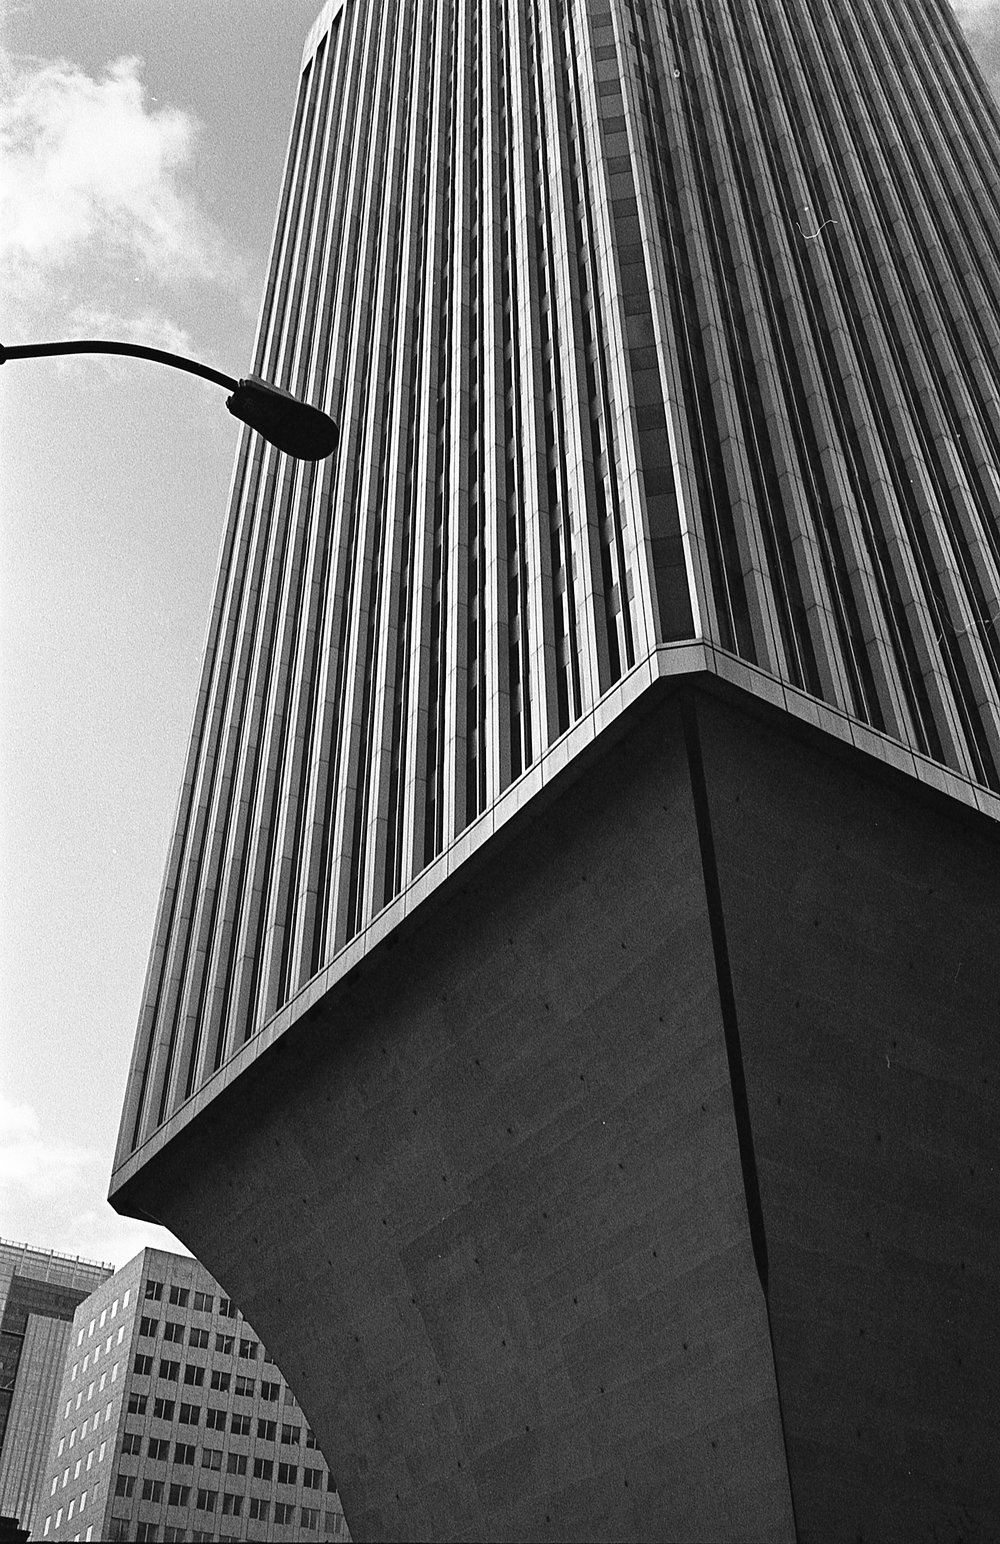 First_Roll_Tmax400026.jpeg